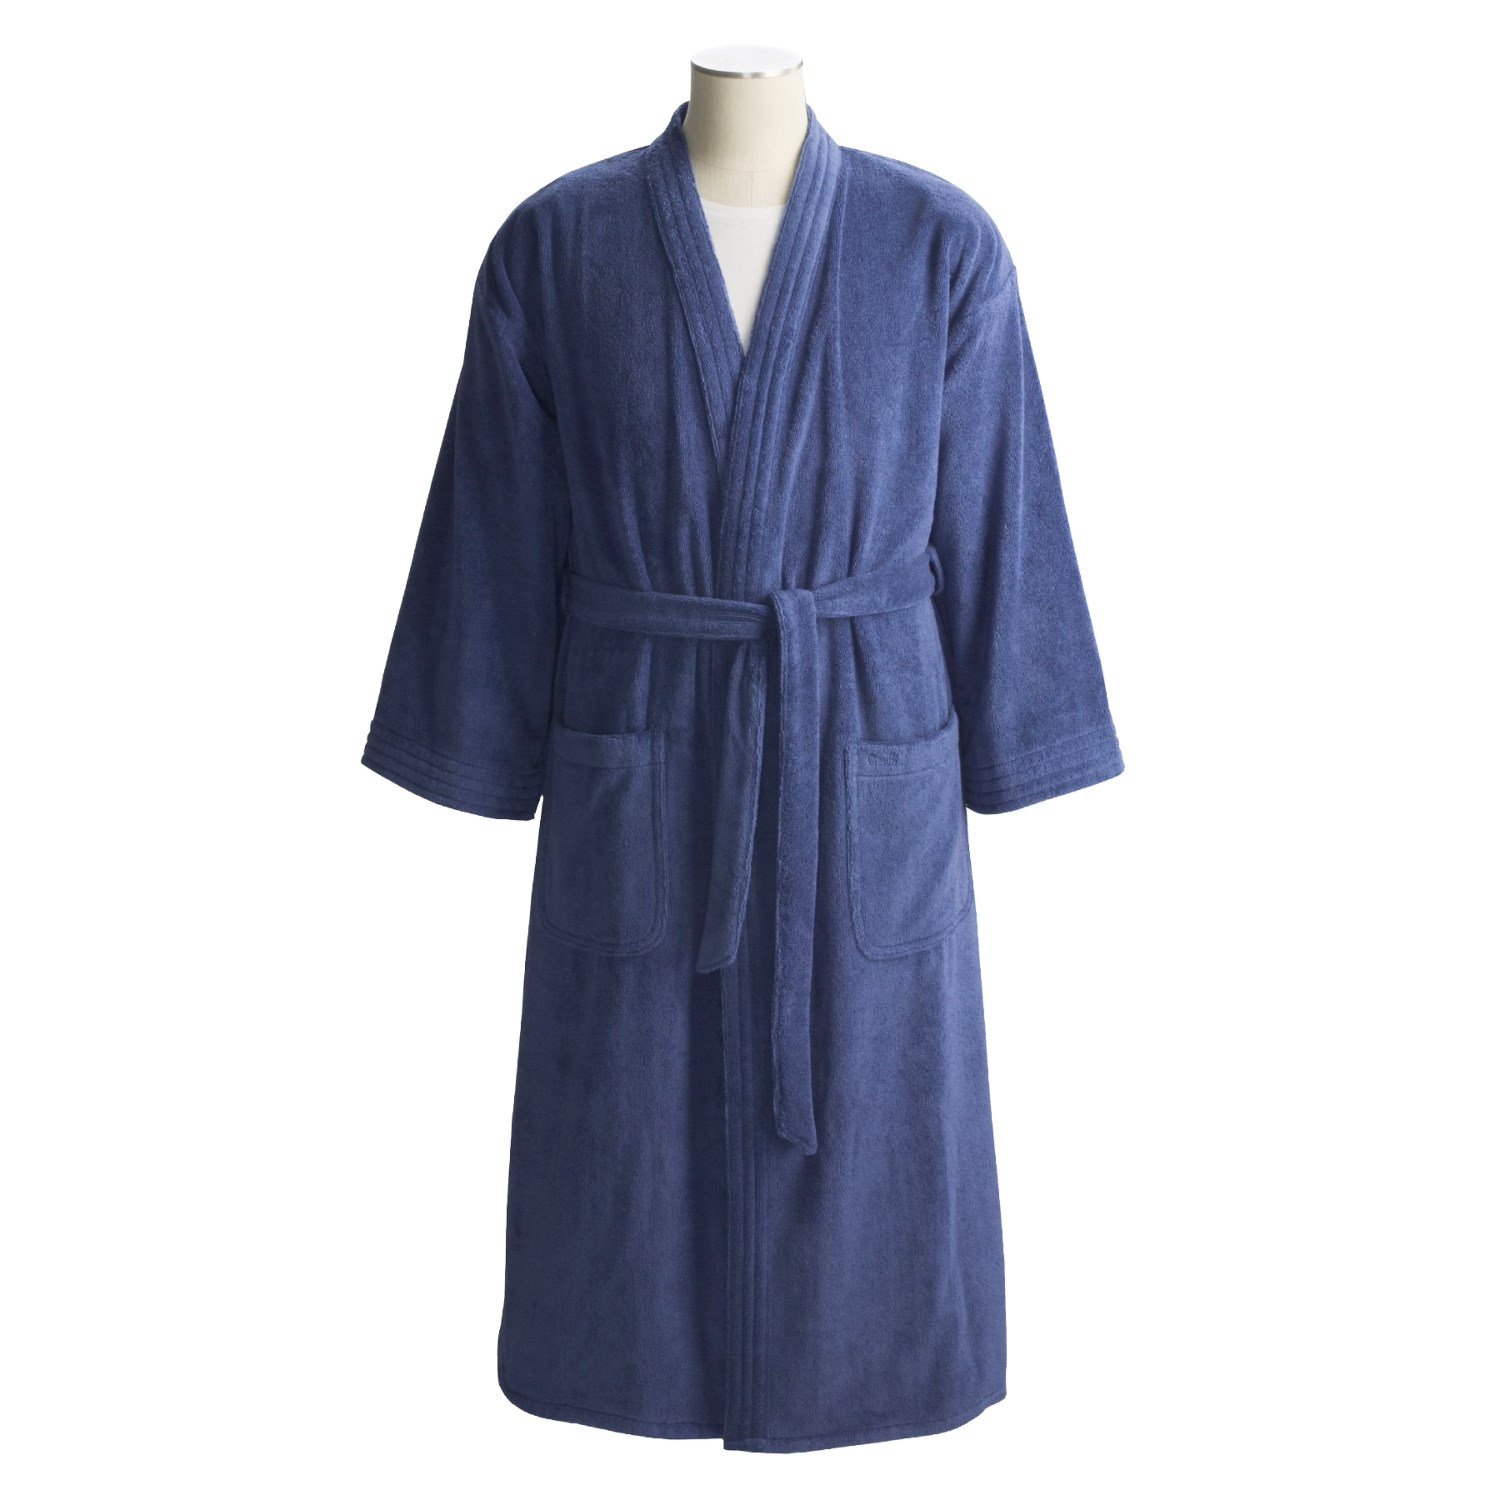 Find great deals on eBay for terry bath robe. Shop with confidence.